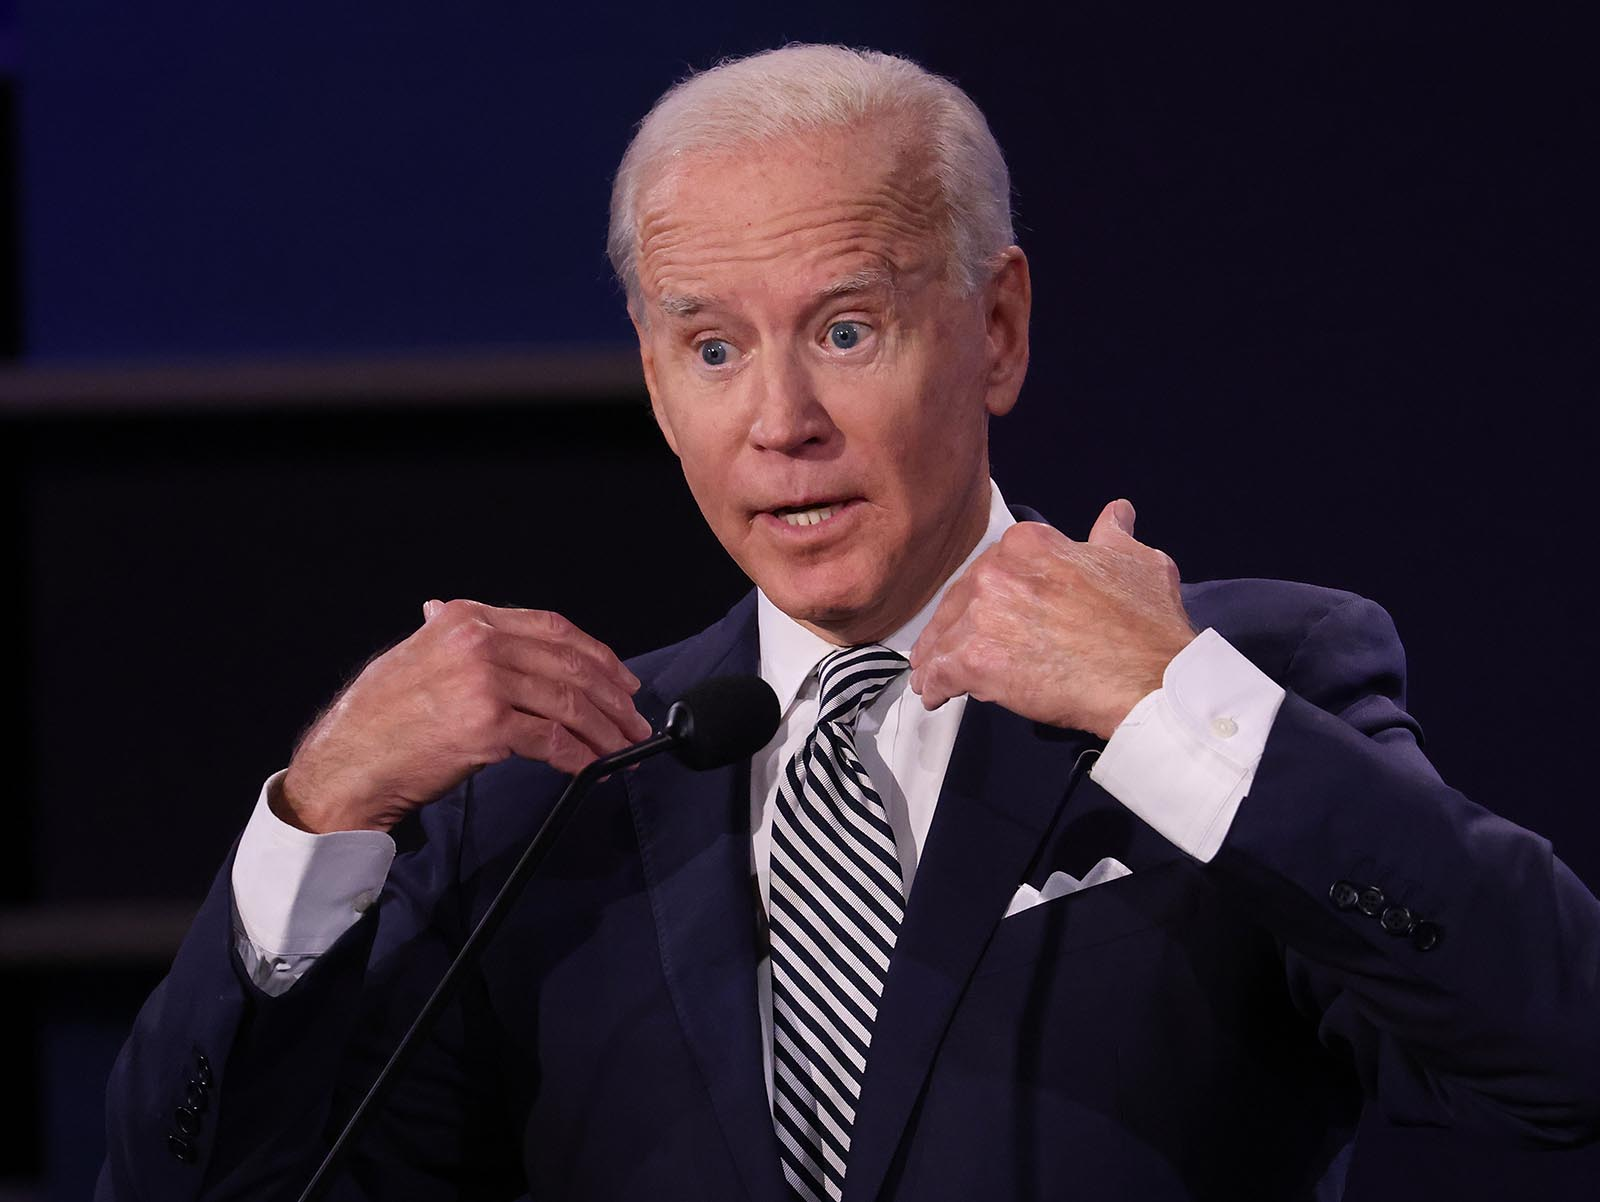 Democratic presidential nominee Joe Biden participates in the first presidential debate against President Donald Trump.